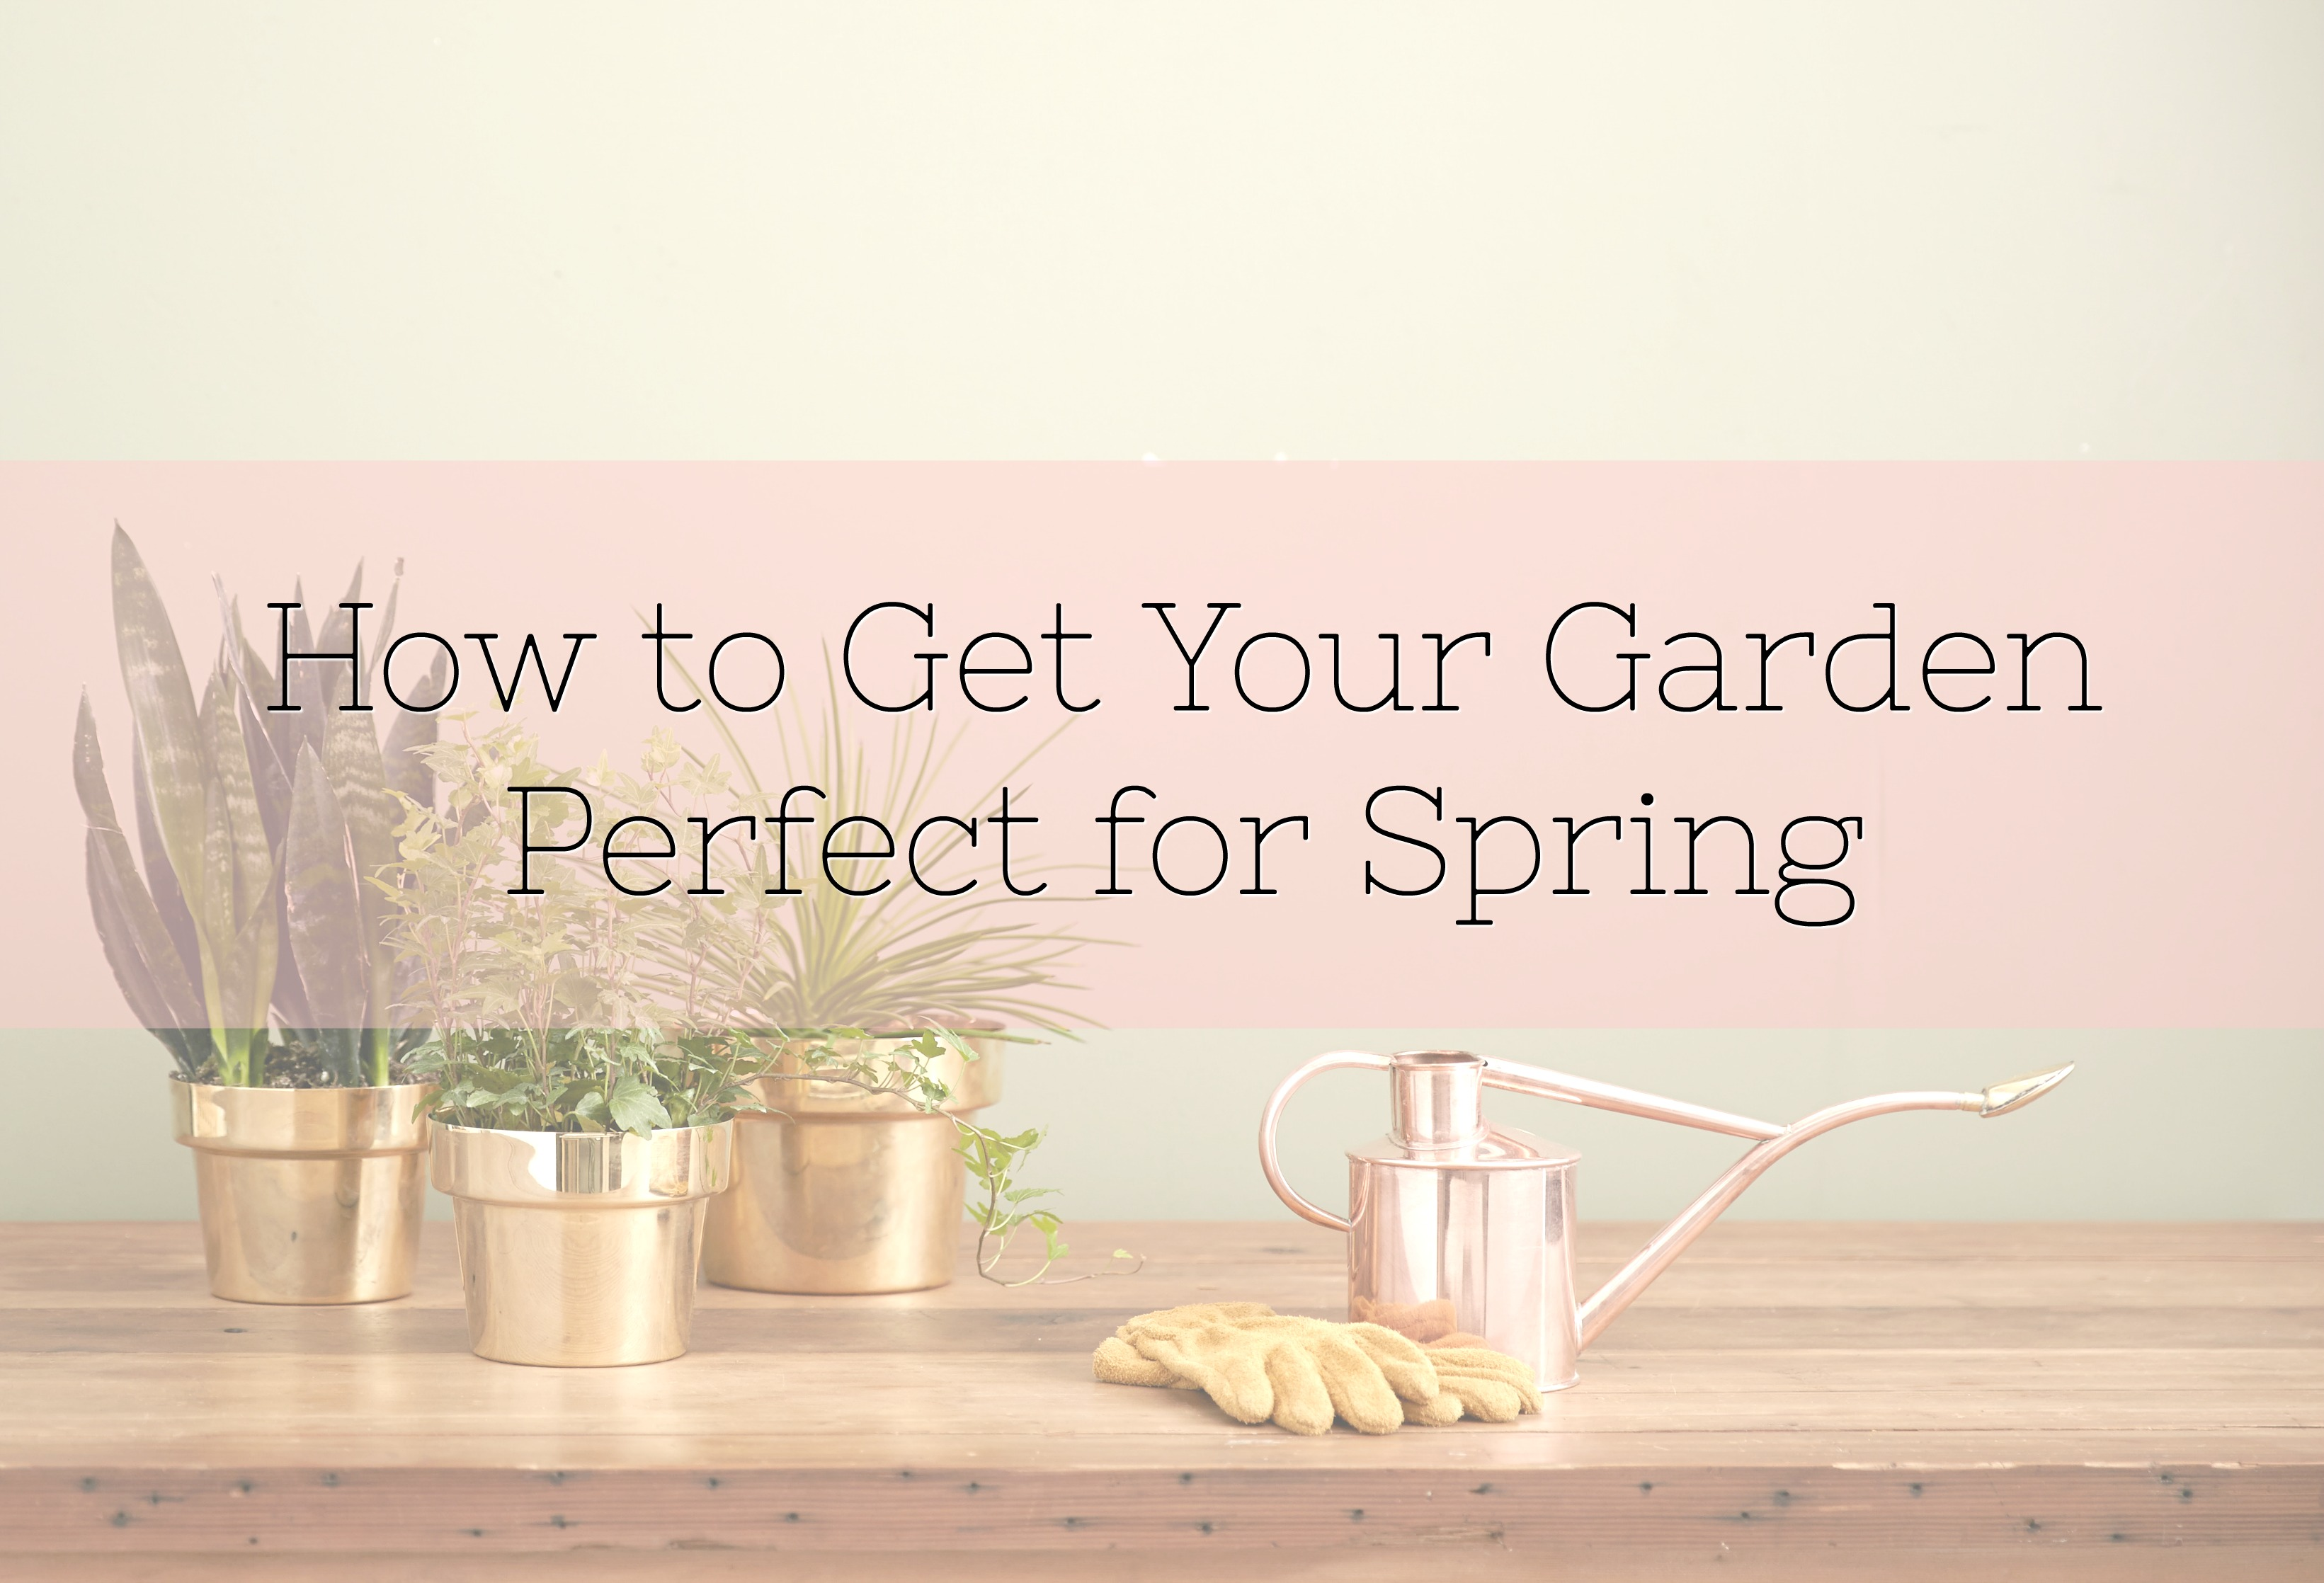 How to Get Your Garden Perfect for Spring title